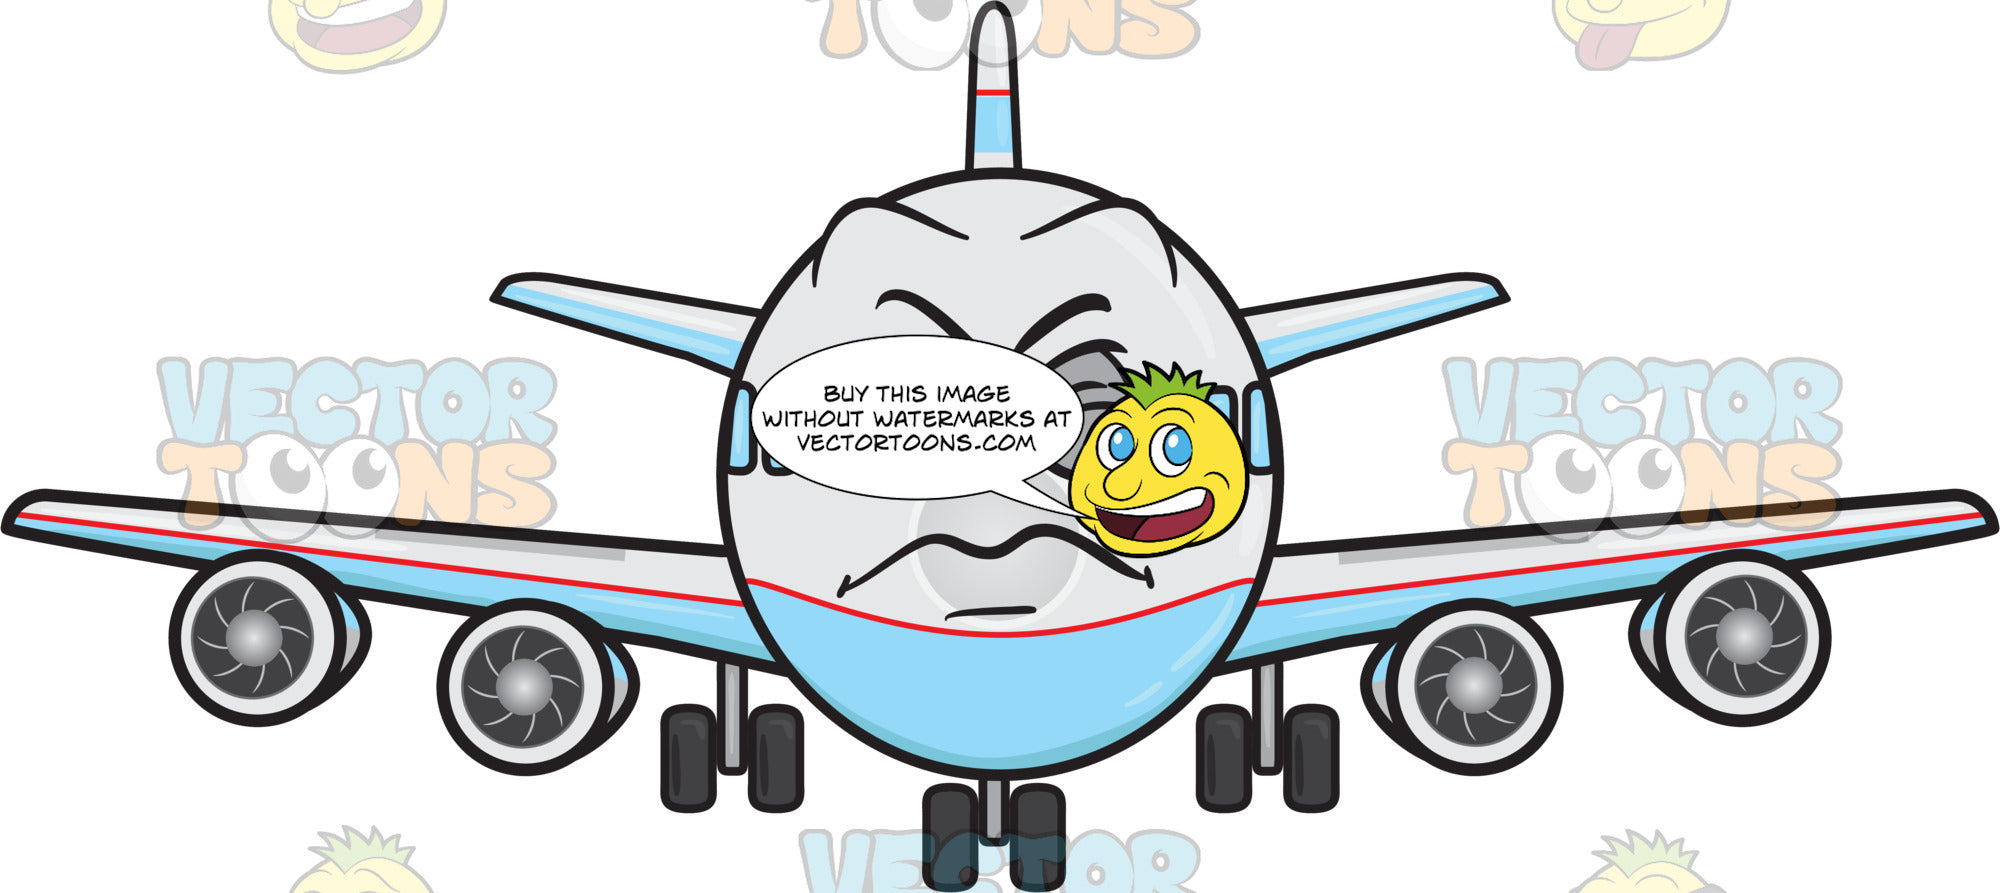 Jumbo jet plane with disgusted look on face emoji clipart cartoons by vectortoons